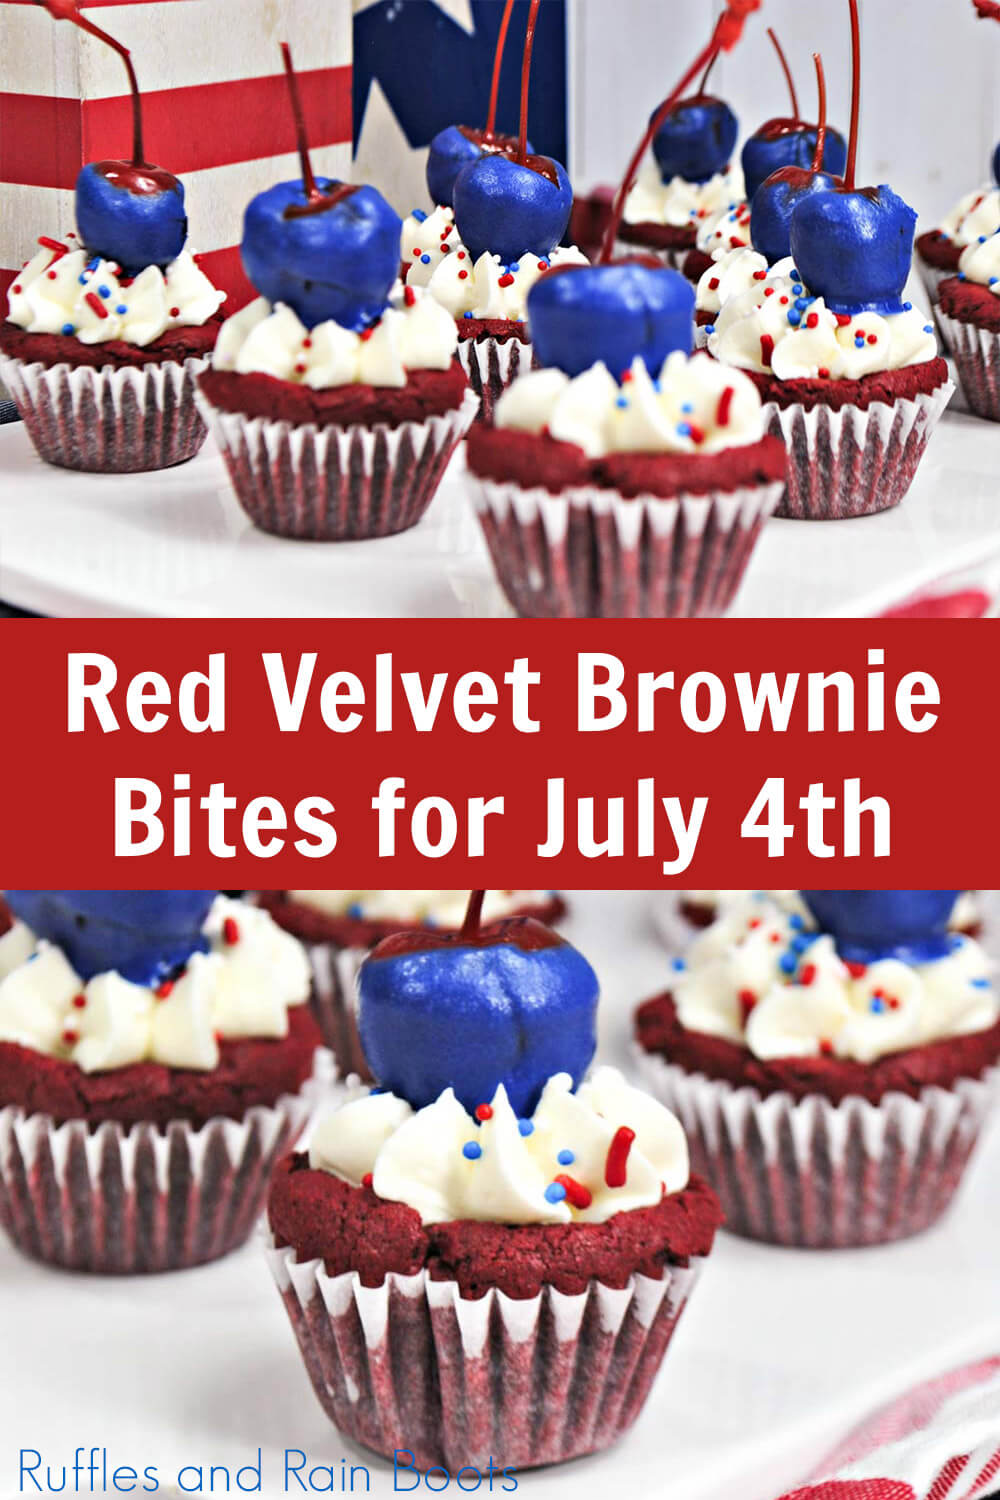 photo collage of red velvet brownie bites for july 4th